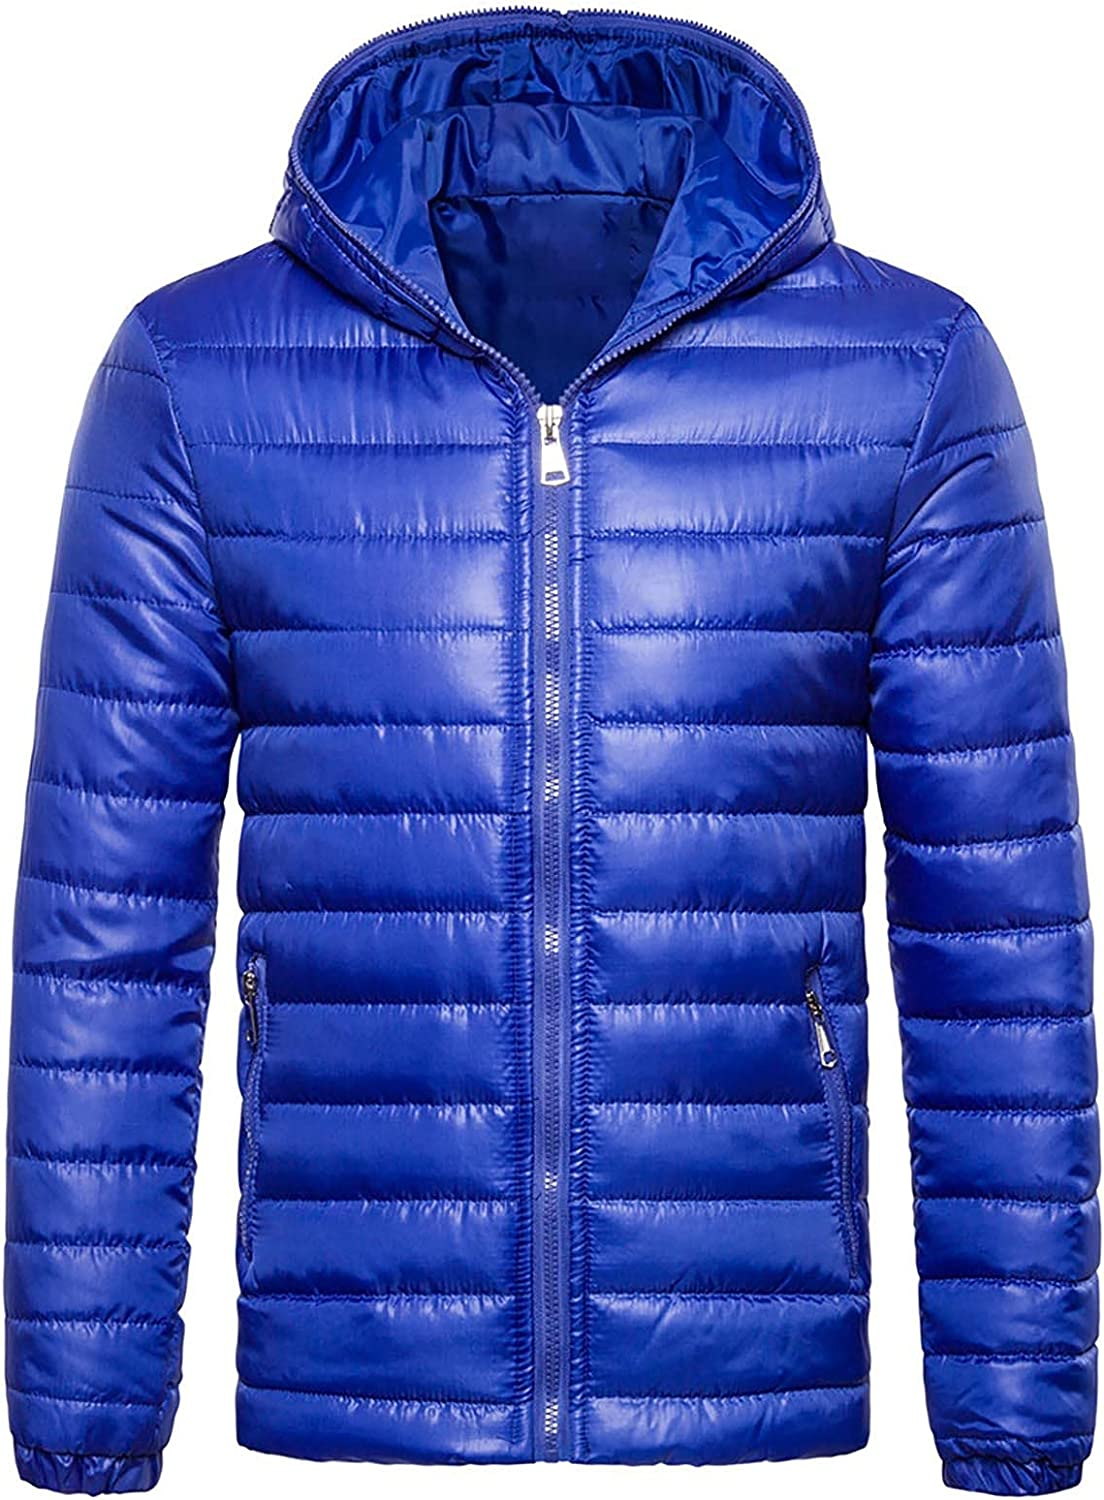 Men's Hooded Puffer Coat Winter Warm Down Packable Outerwear Classic All-match Coat Thick Padded Jacket Lightweight